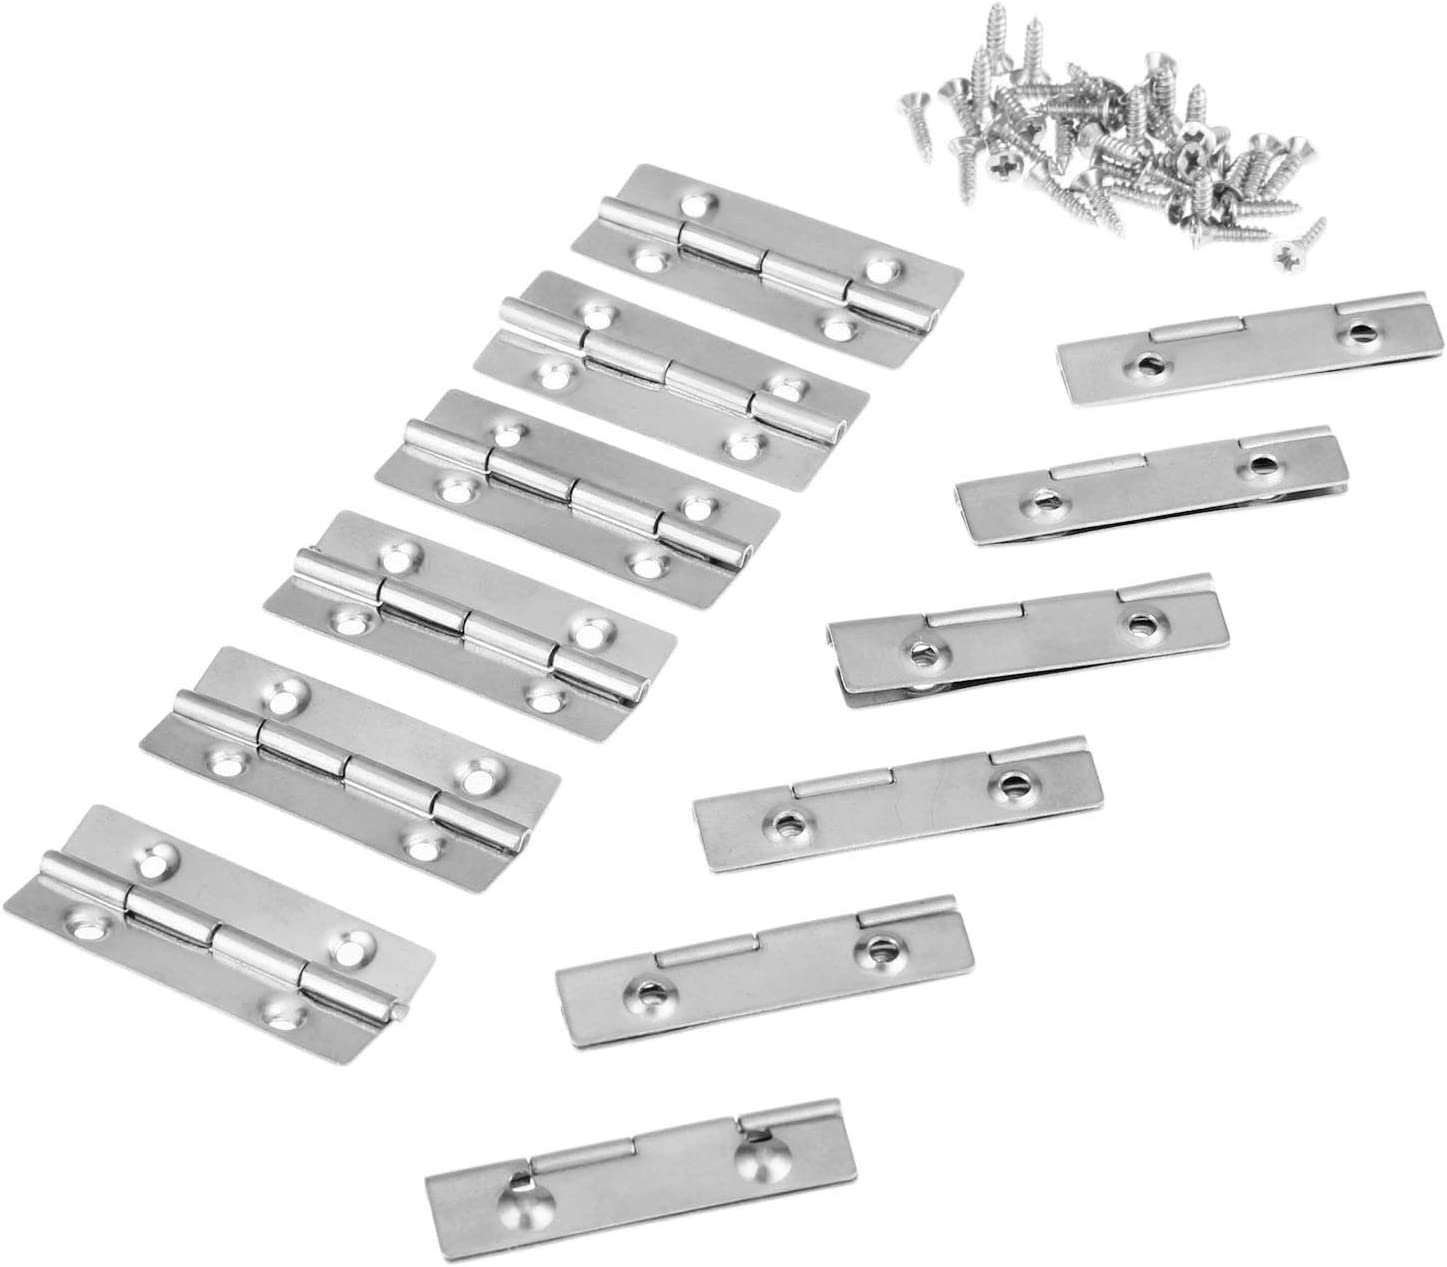 Door Hinges 12Pcs 35x15mm Stainless Steel Butt Hinge for Cabinet Drawer Door Kitchen Window 4 Small Hole Hinge with Screw Furniture Fittings Door accessories